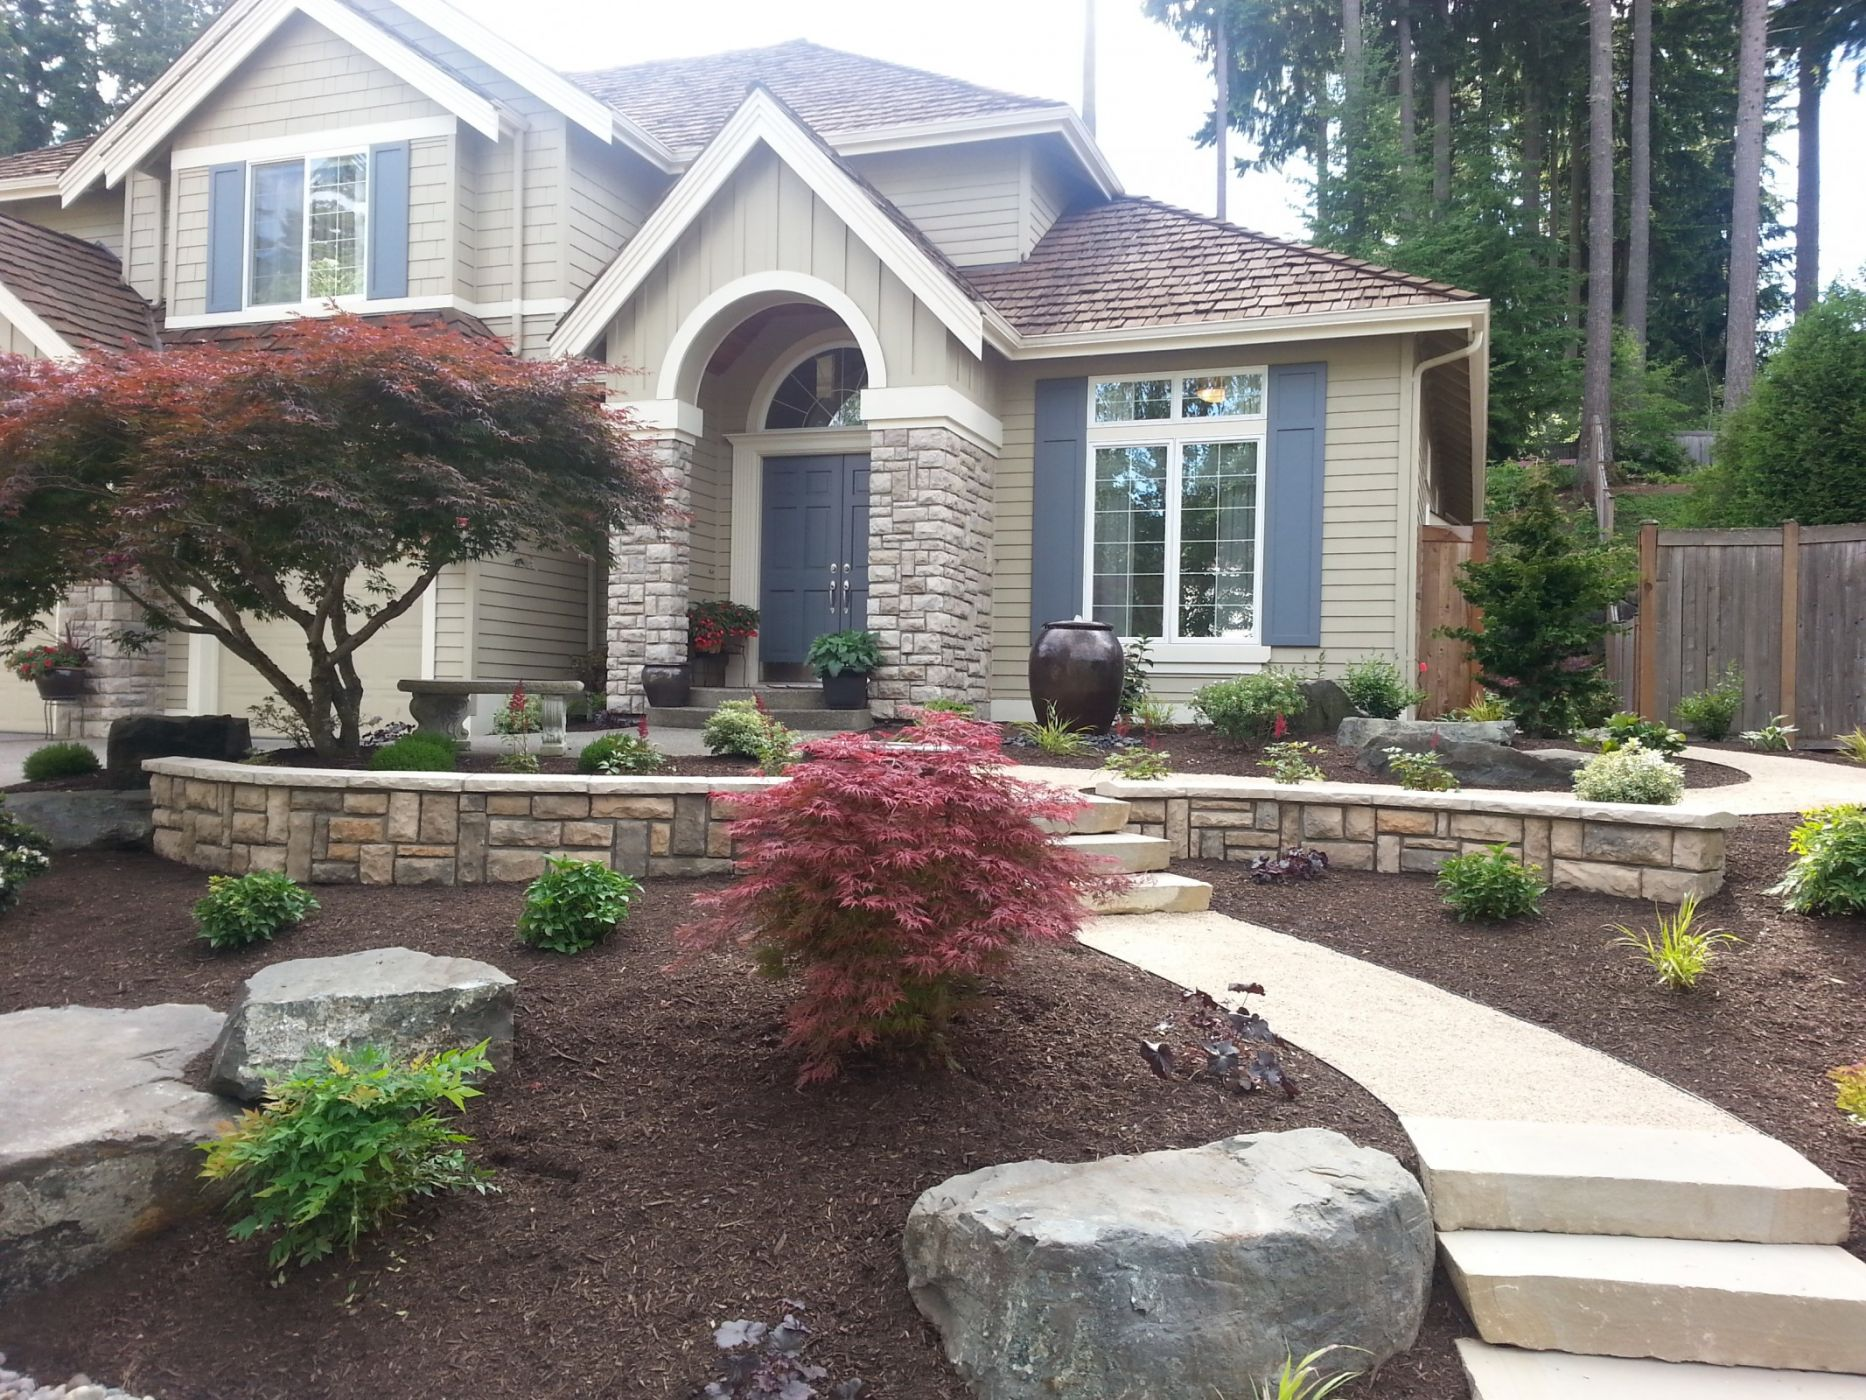 Janika landscaping ideas front yard illinois here for Home front landscaping